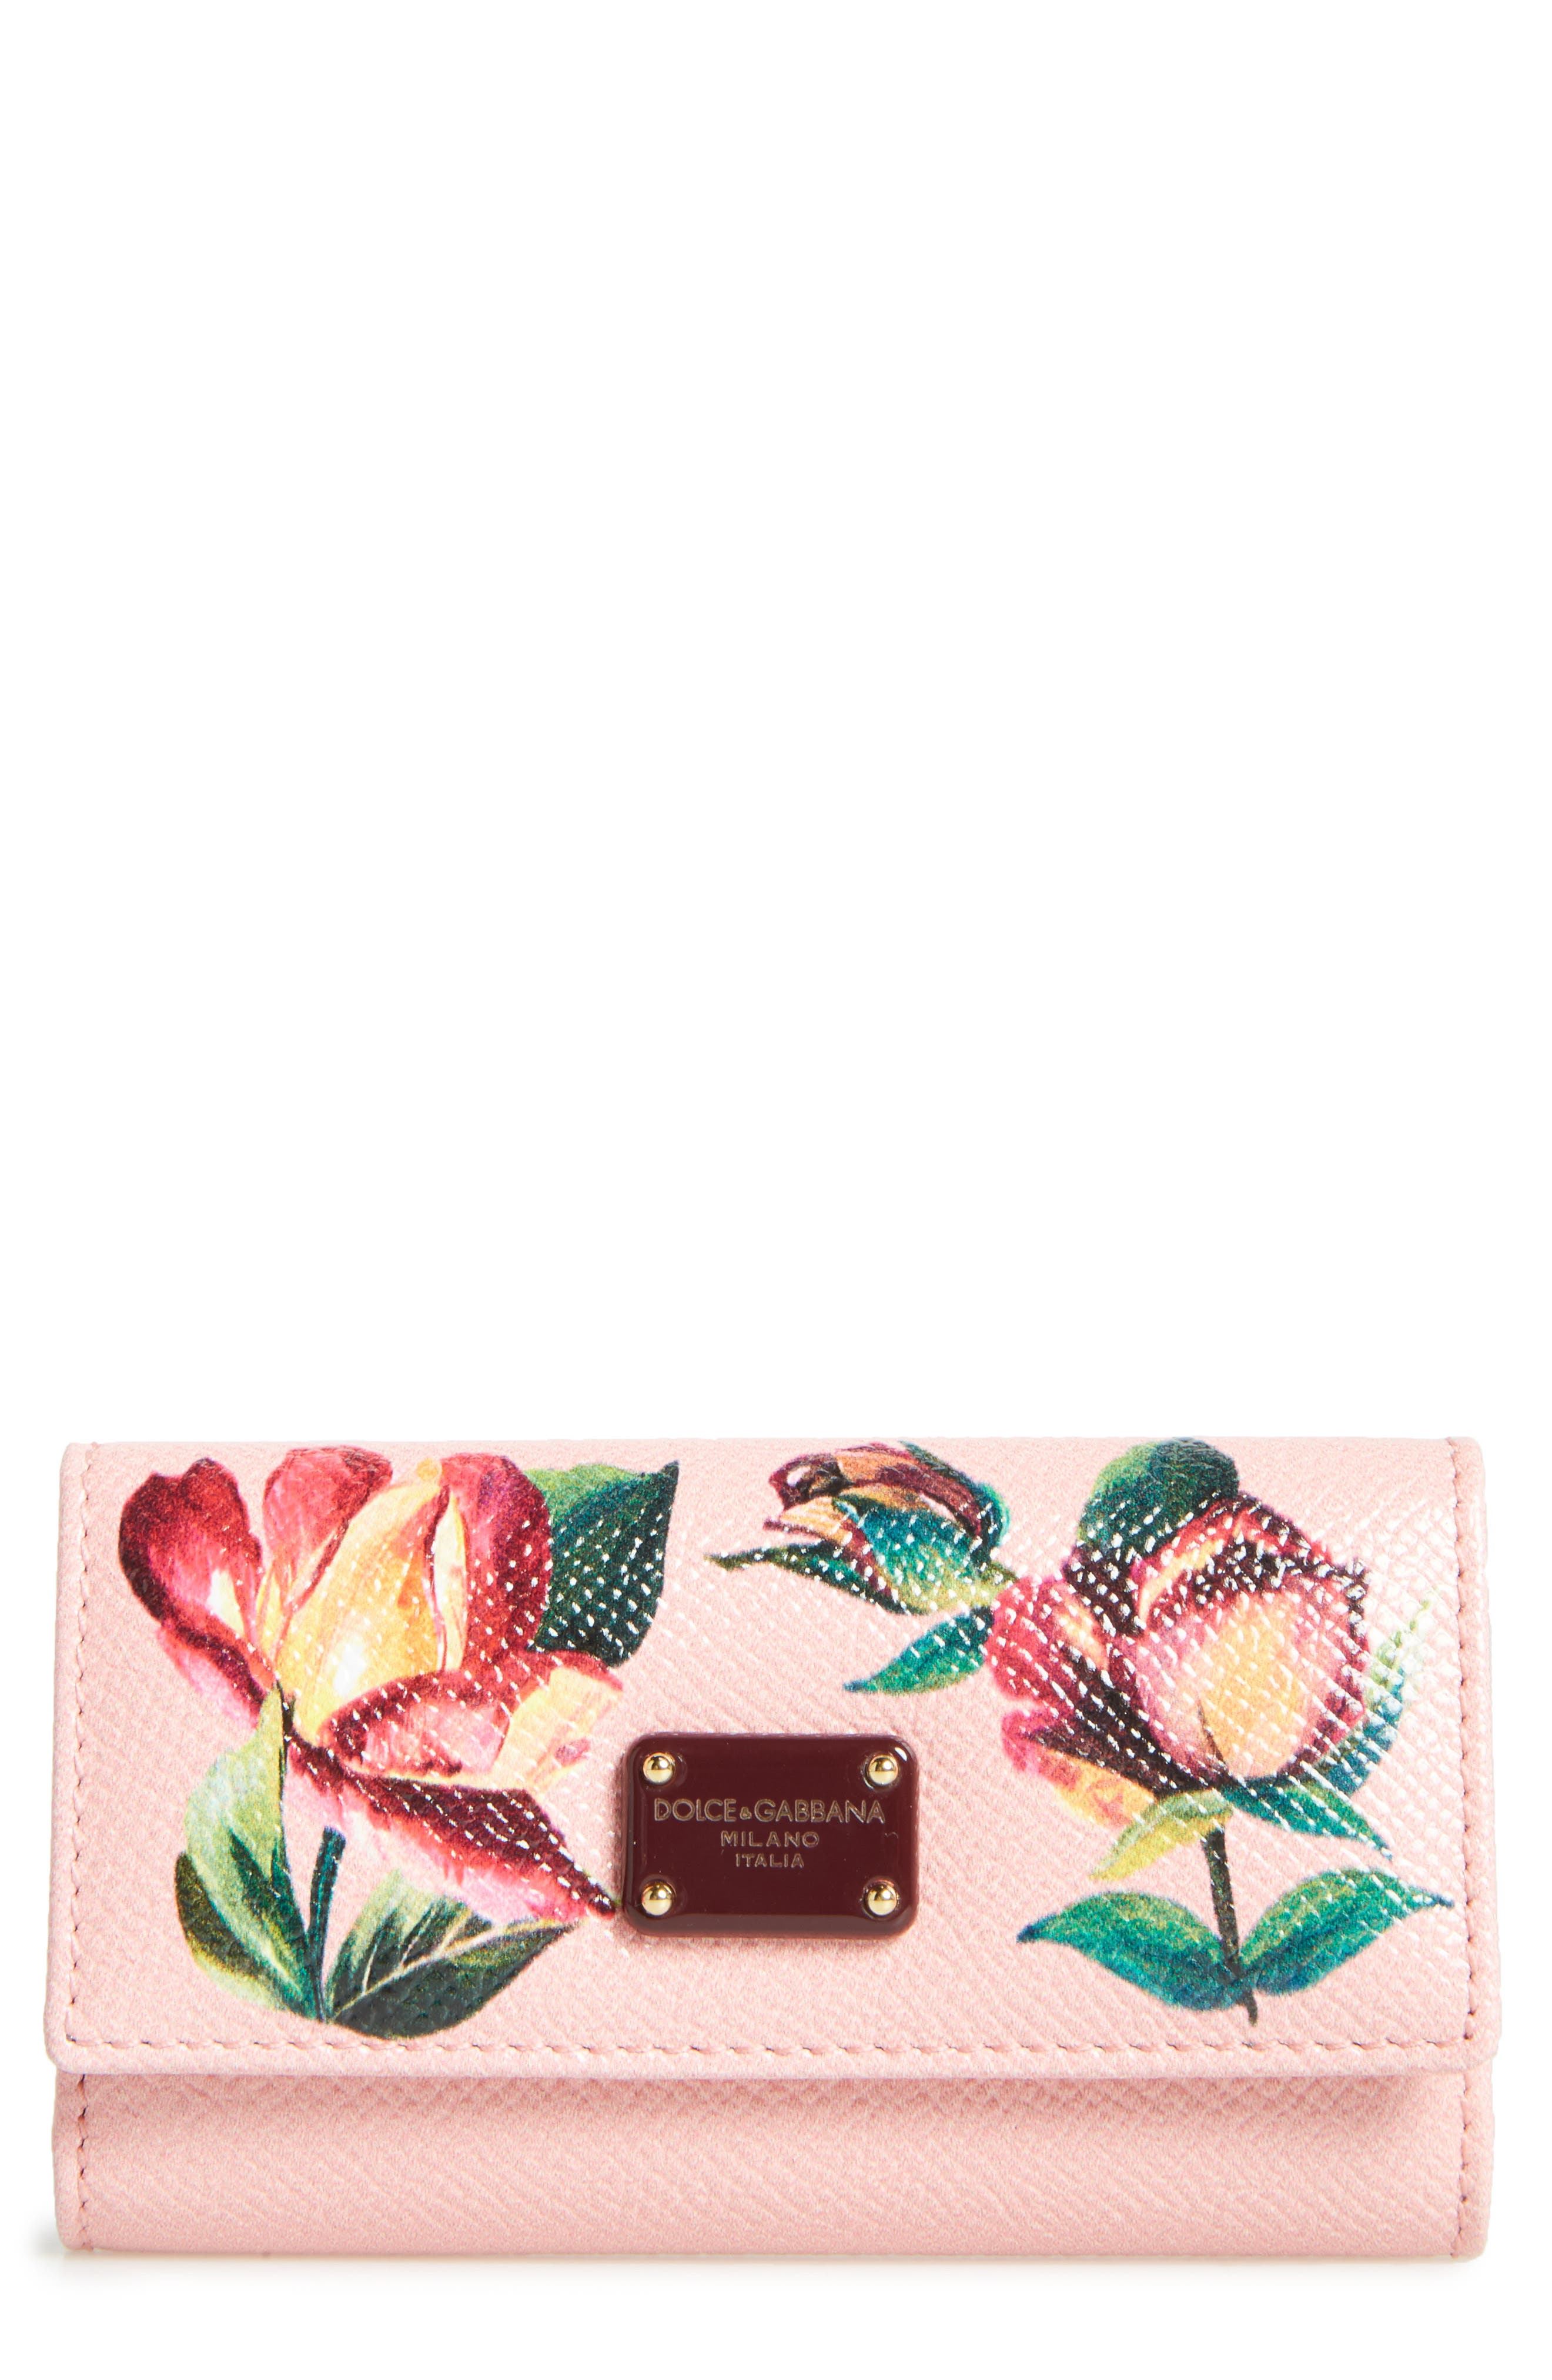 Painted Rose Dauphine Leather Key Holder,                         Main,                         color, Pink